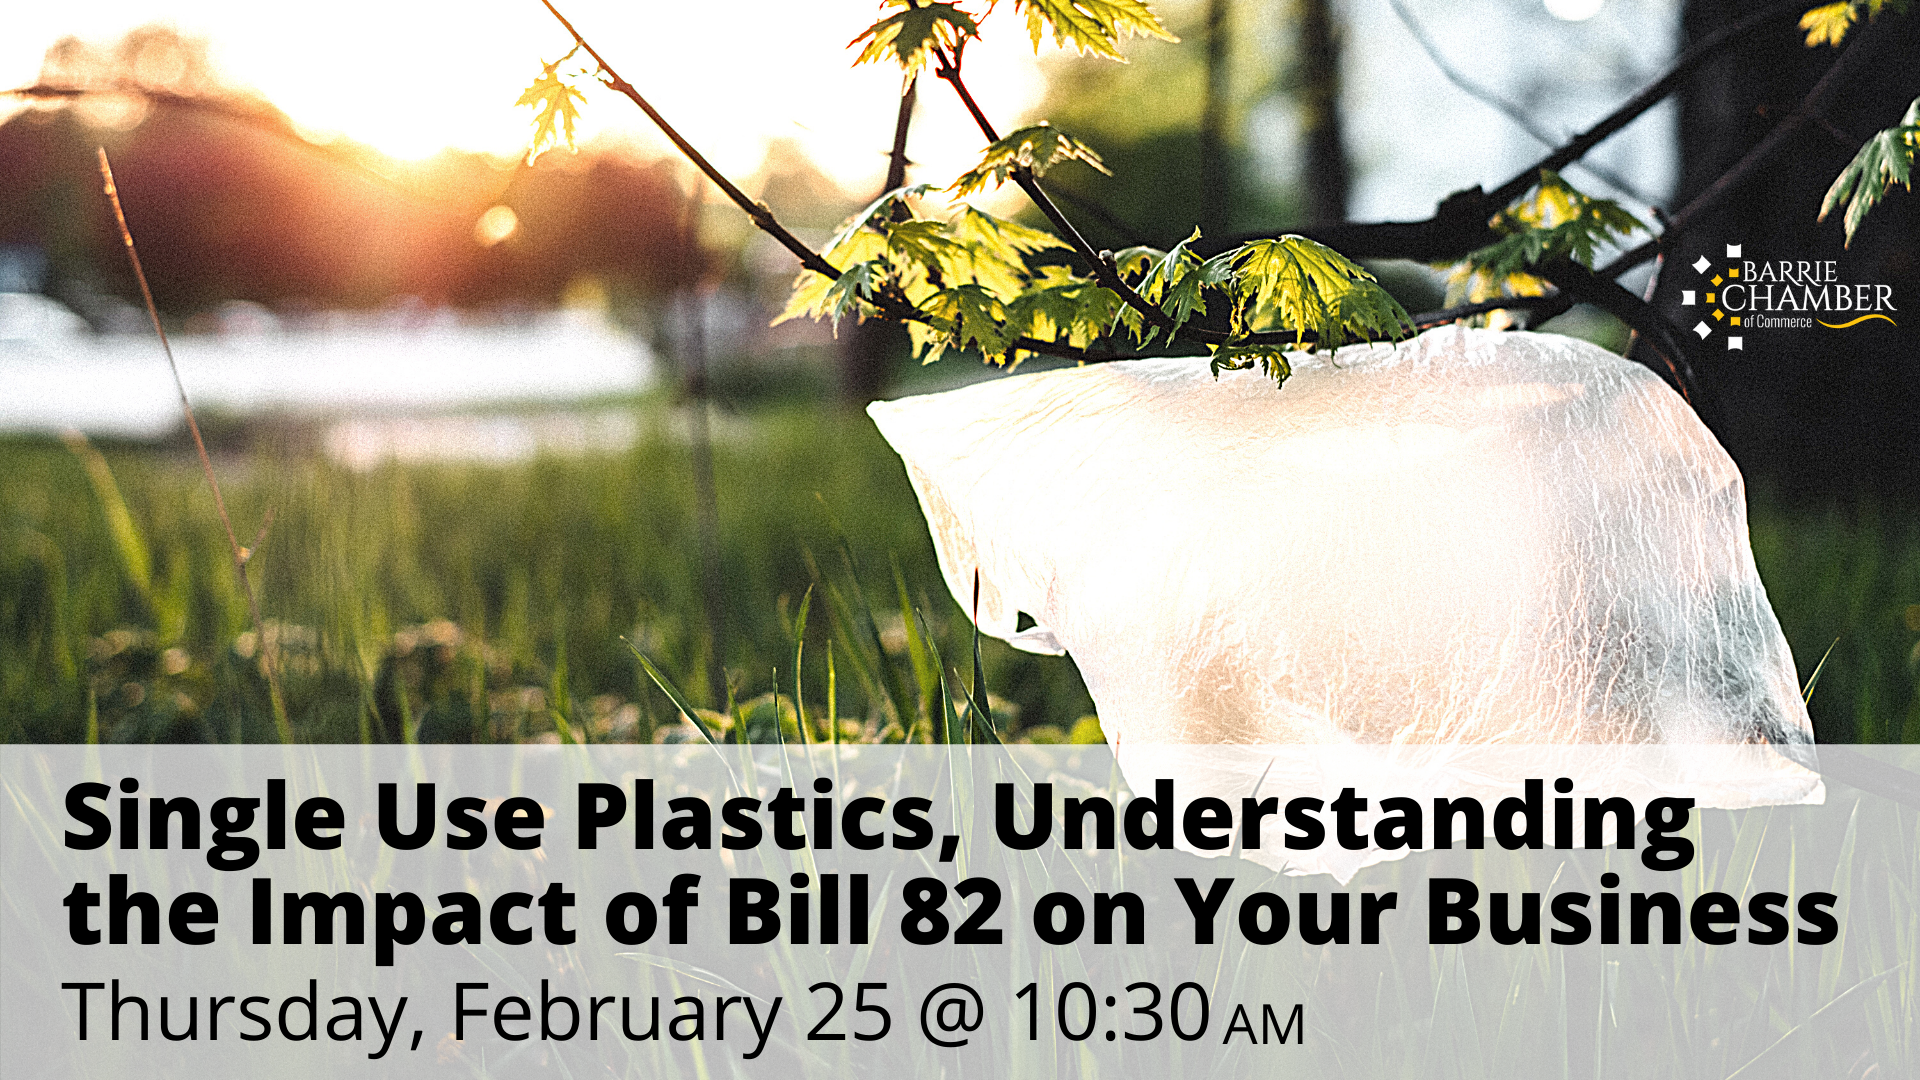 Single Use Plastics, Understanding the Impact of Bill 82 on Your Business, February 25 @ 10:30 am